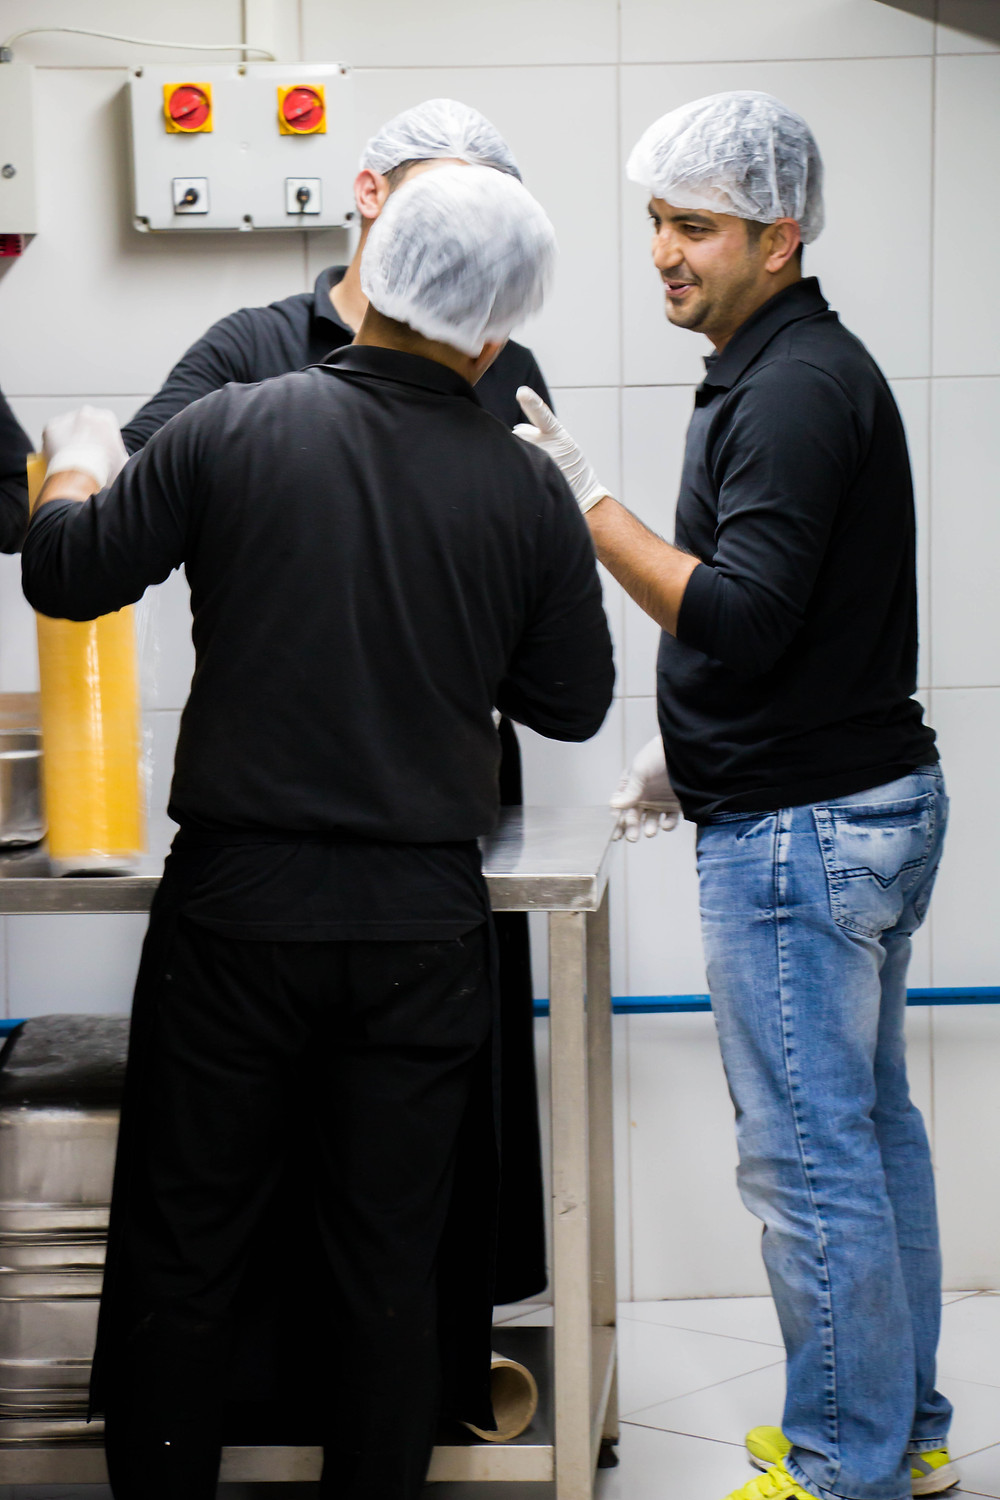 Delivery Work With the Kitchen Staff